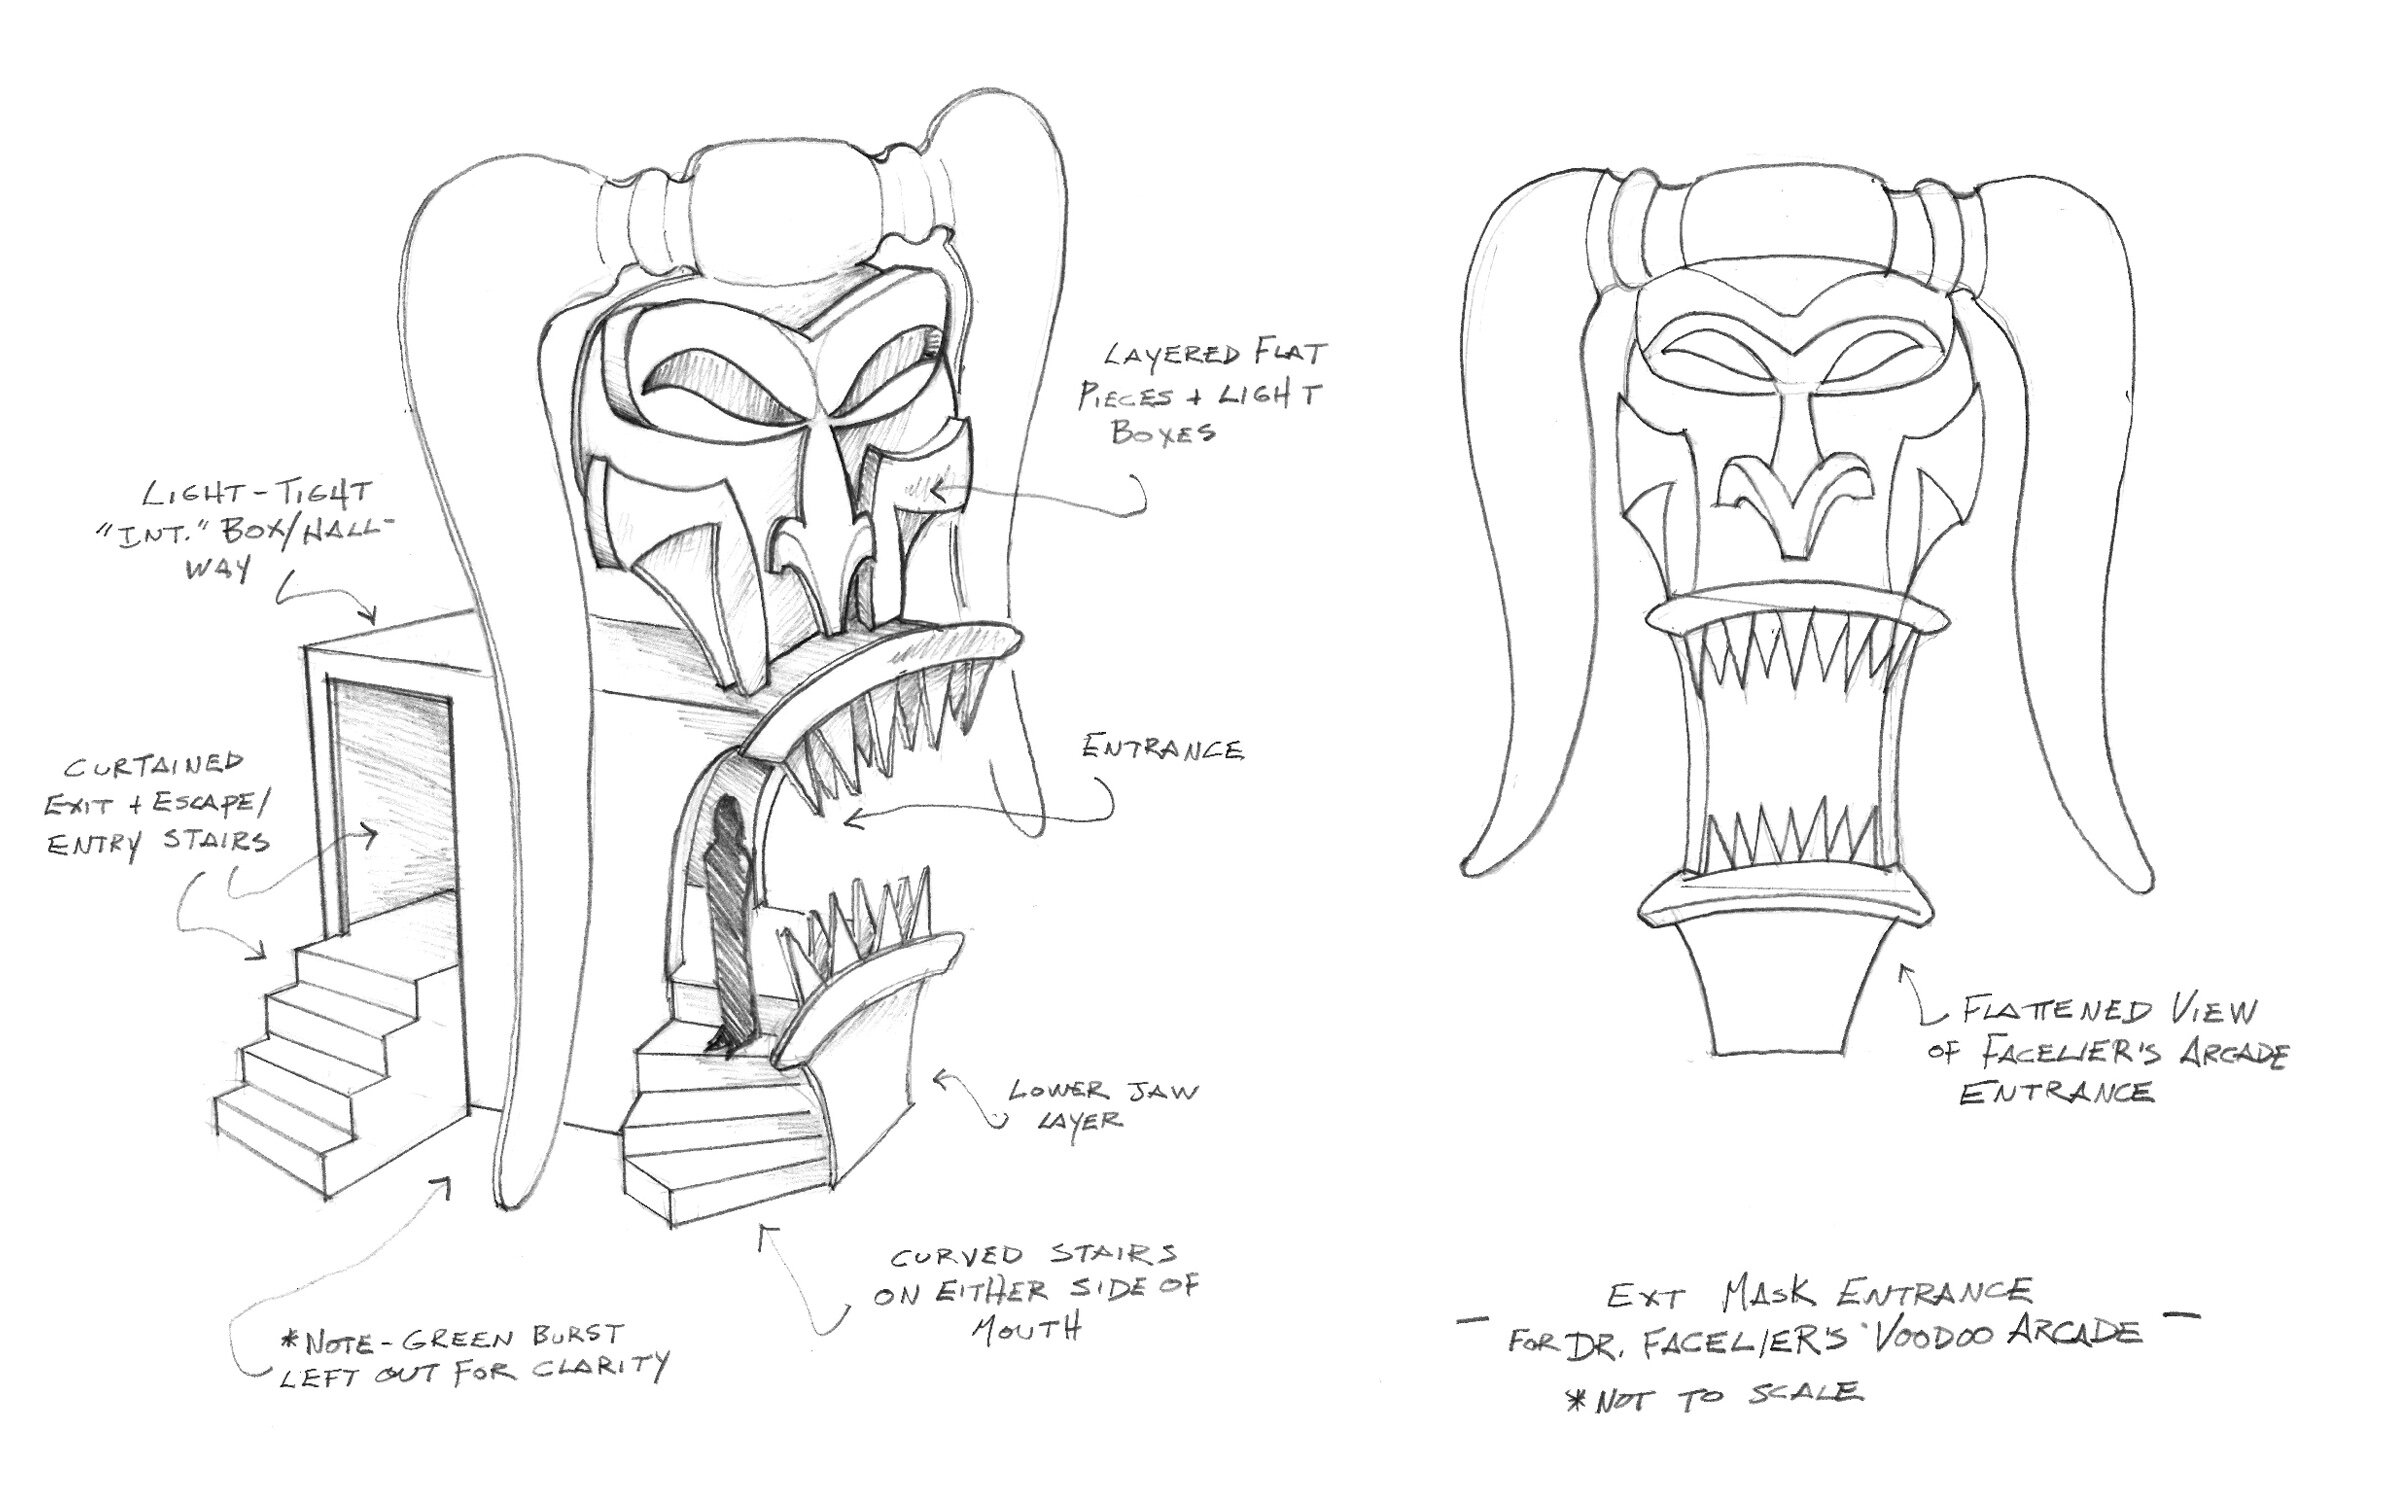 Another sketch of the mask/entrance in Dr. Facilier's arcade on the Isle of the Lost. The 3/4 view shows cast access as well as how the flat layers stack up.